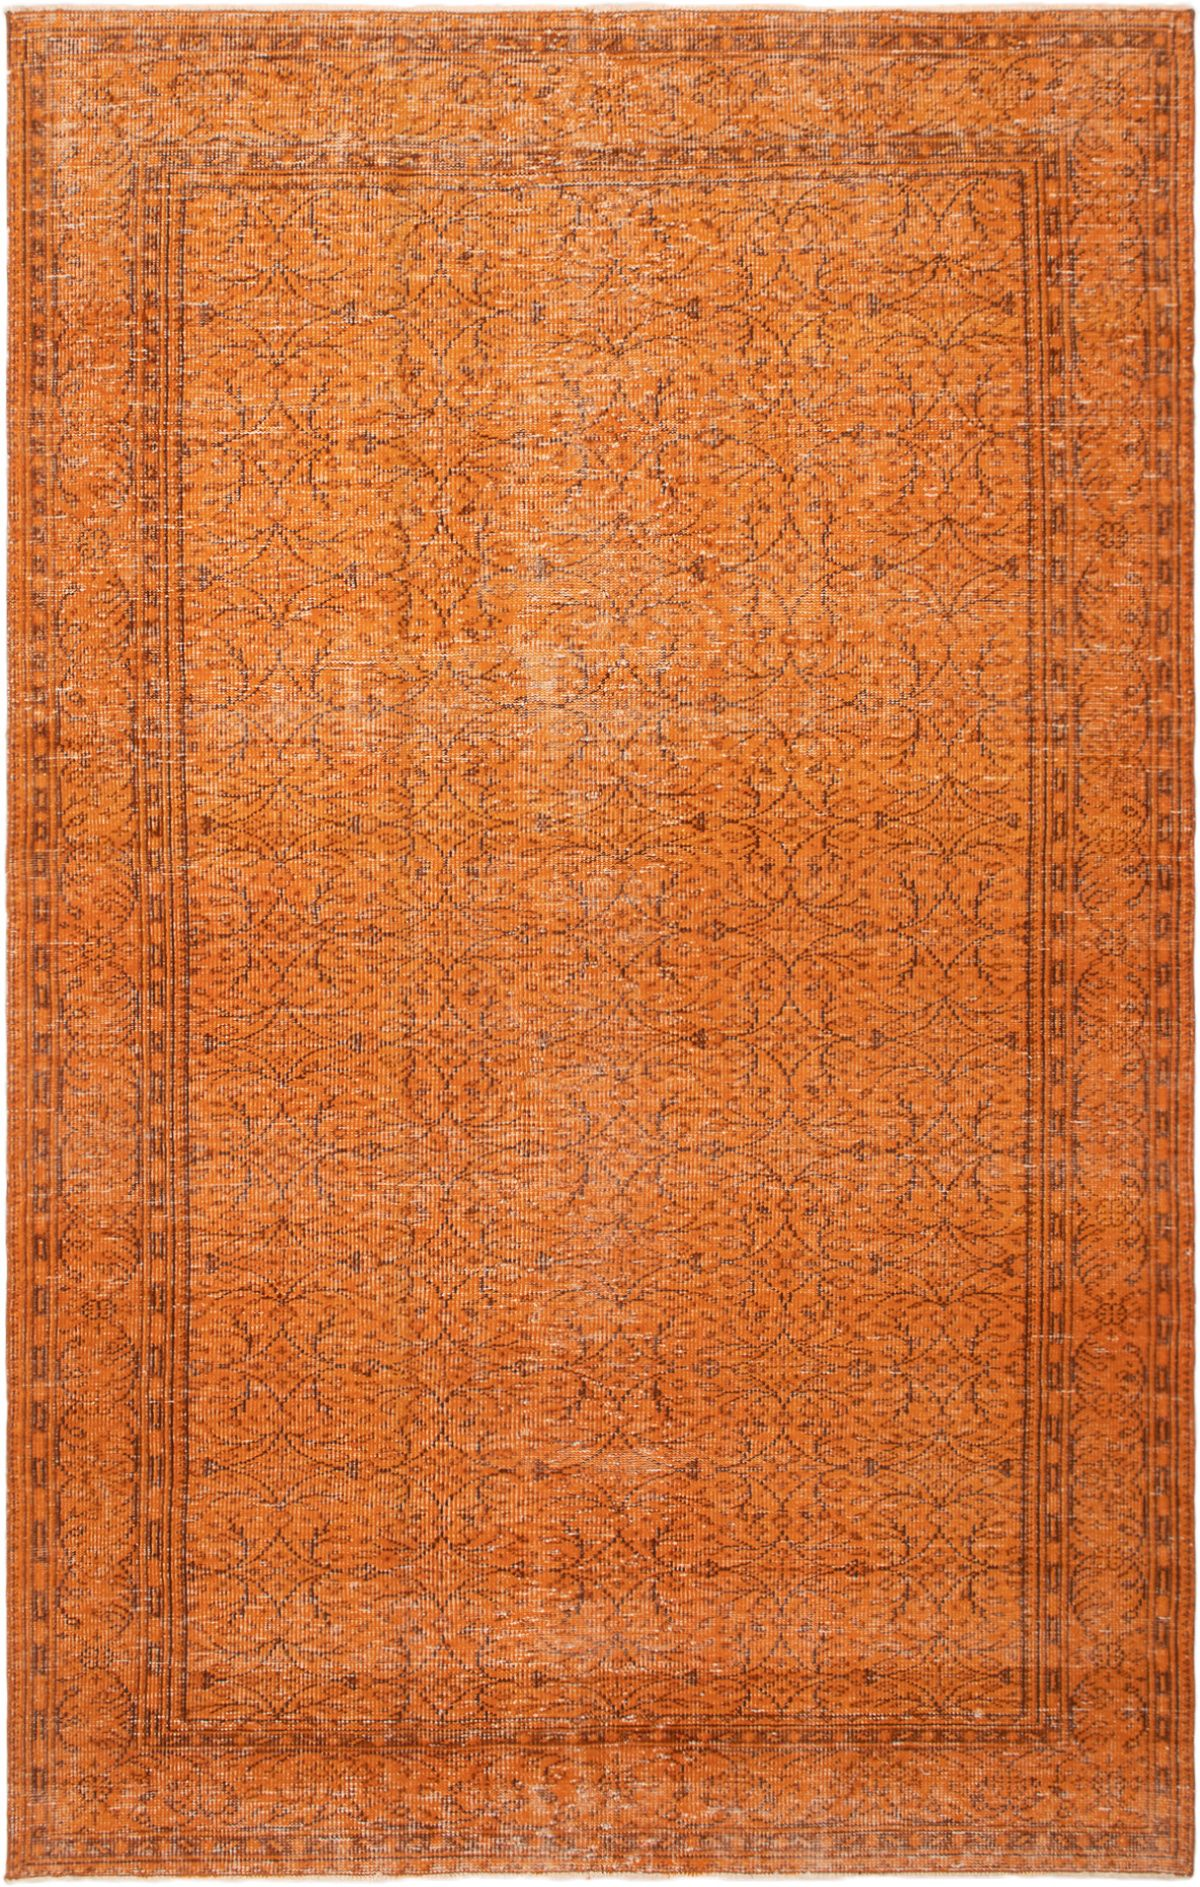 """Hand-knotted Color Transition Orange Wool Rug 6'2"""" x 9'7"""" Size: 6'2"""" x 9'7"""""""